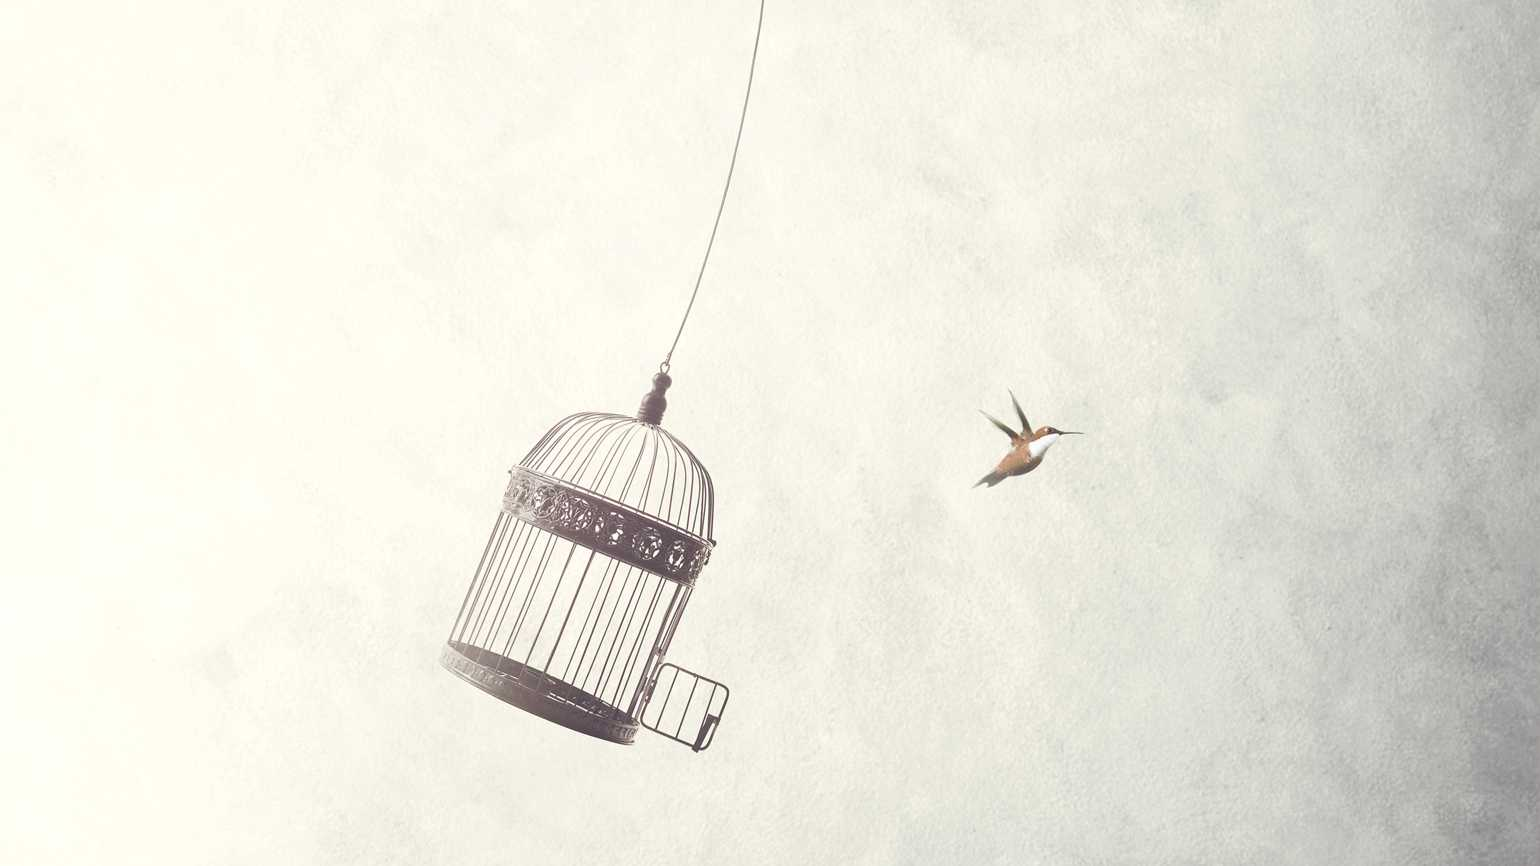 A jailbird flies out of its birdcage.